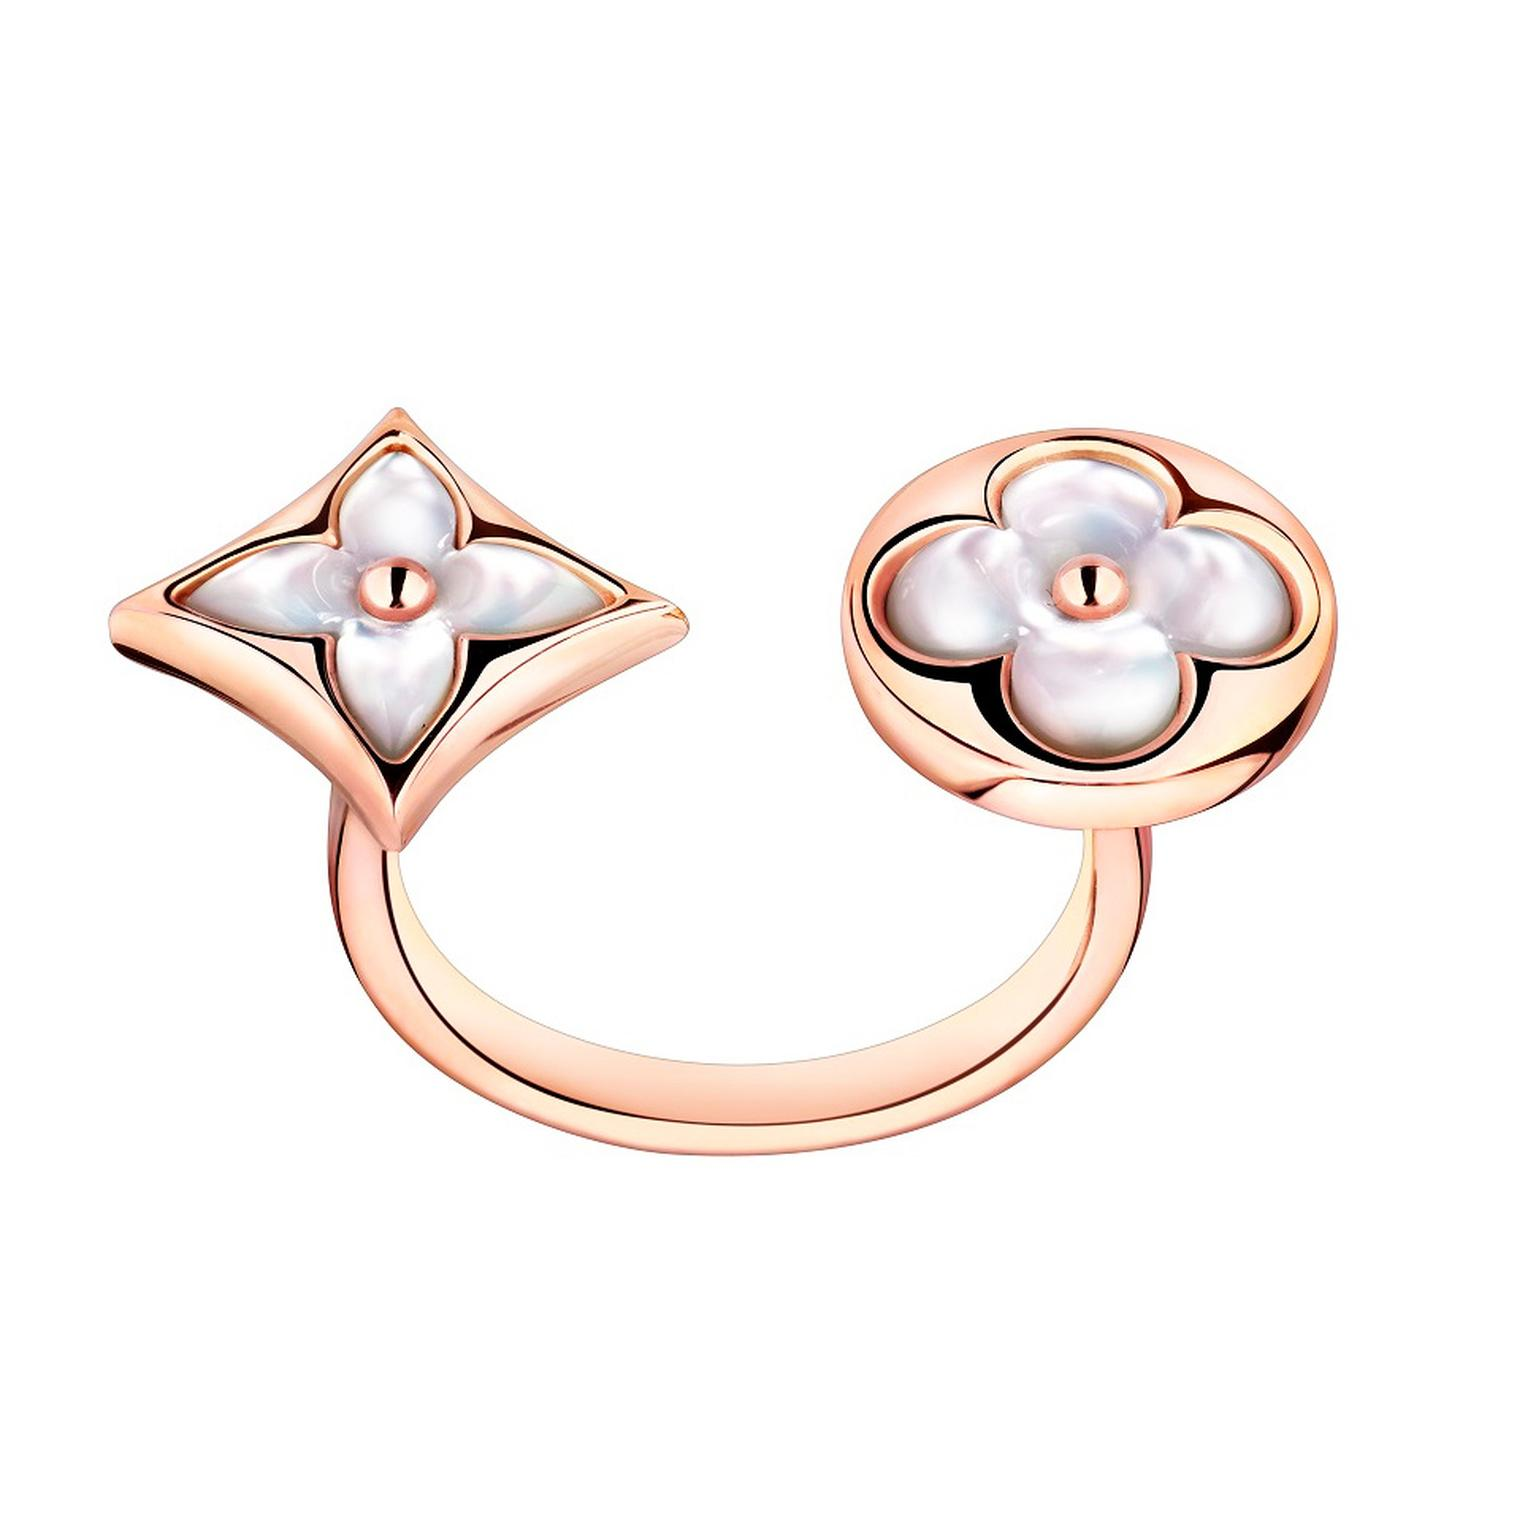 Louis Vuitton Color Blossom BB mother of pearl between finger ring